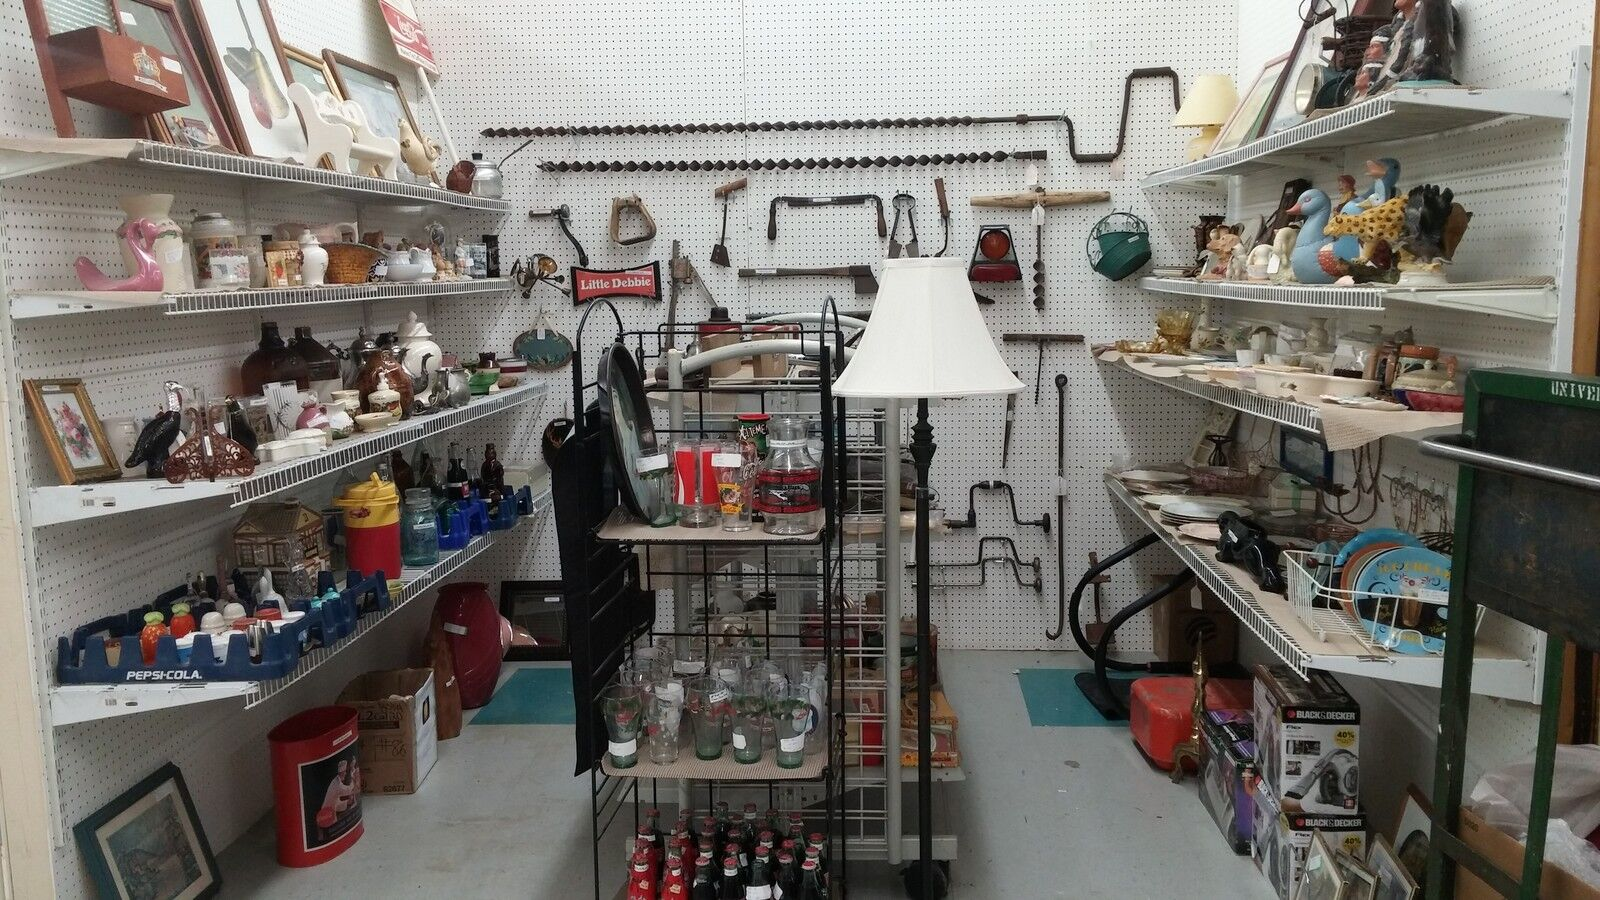 Johns Antiques and Collectibles